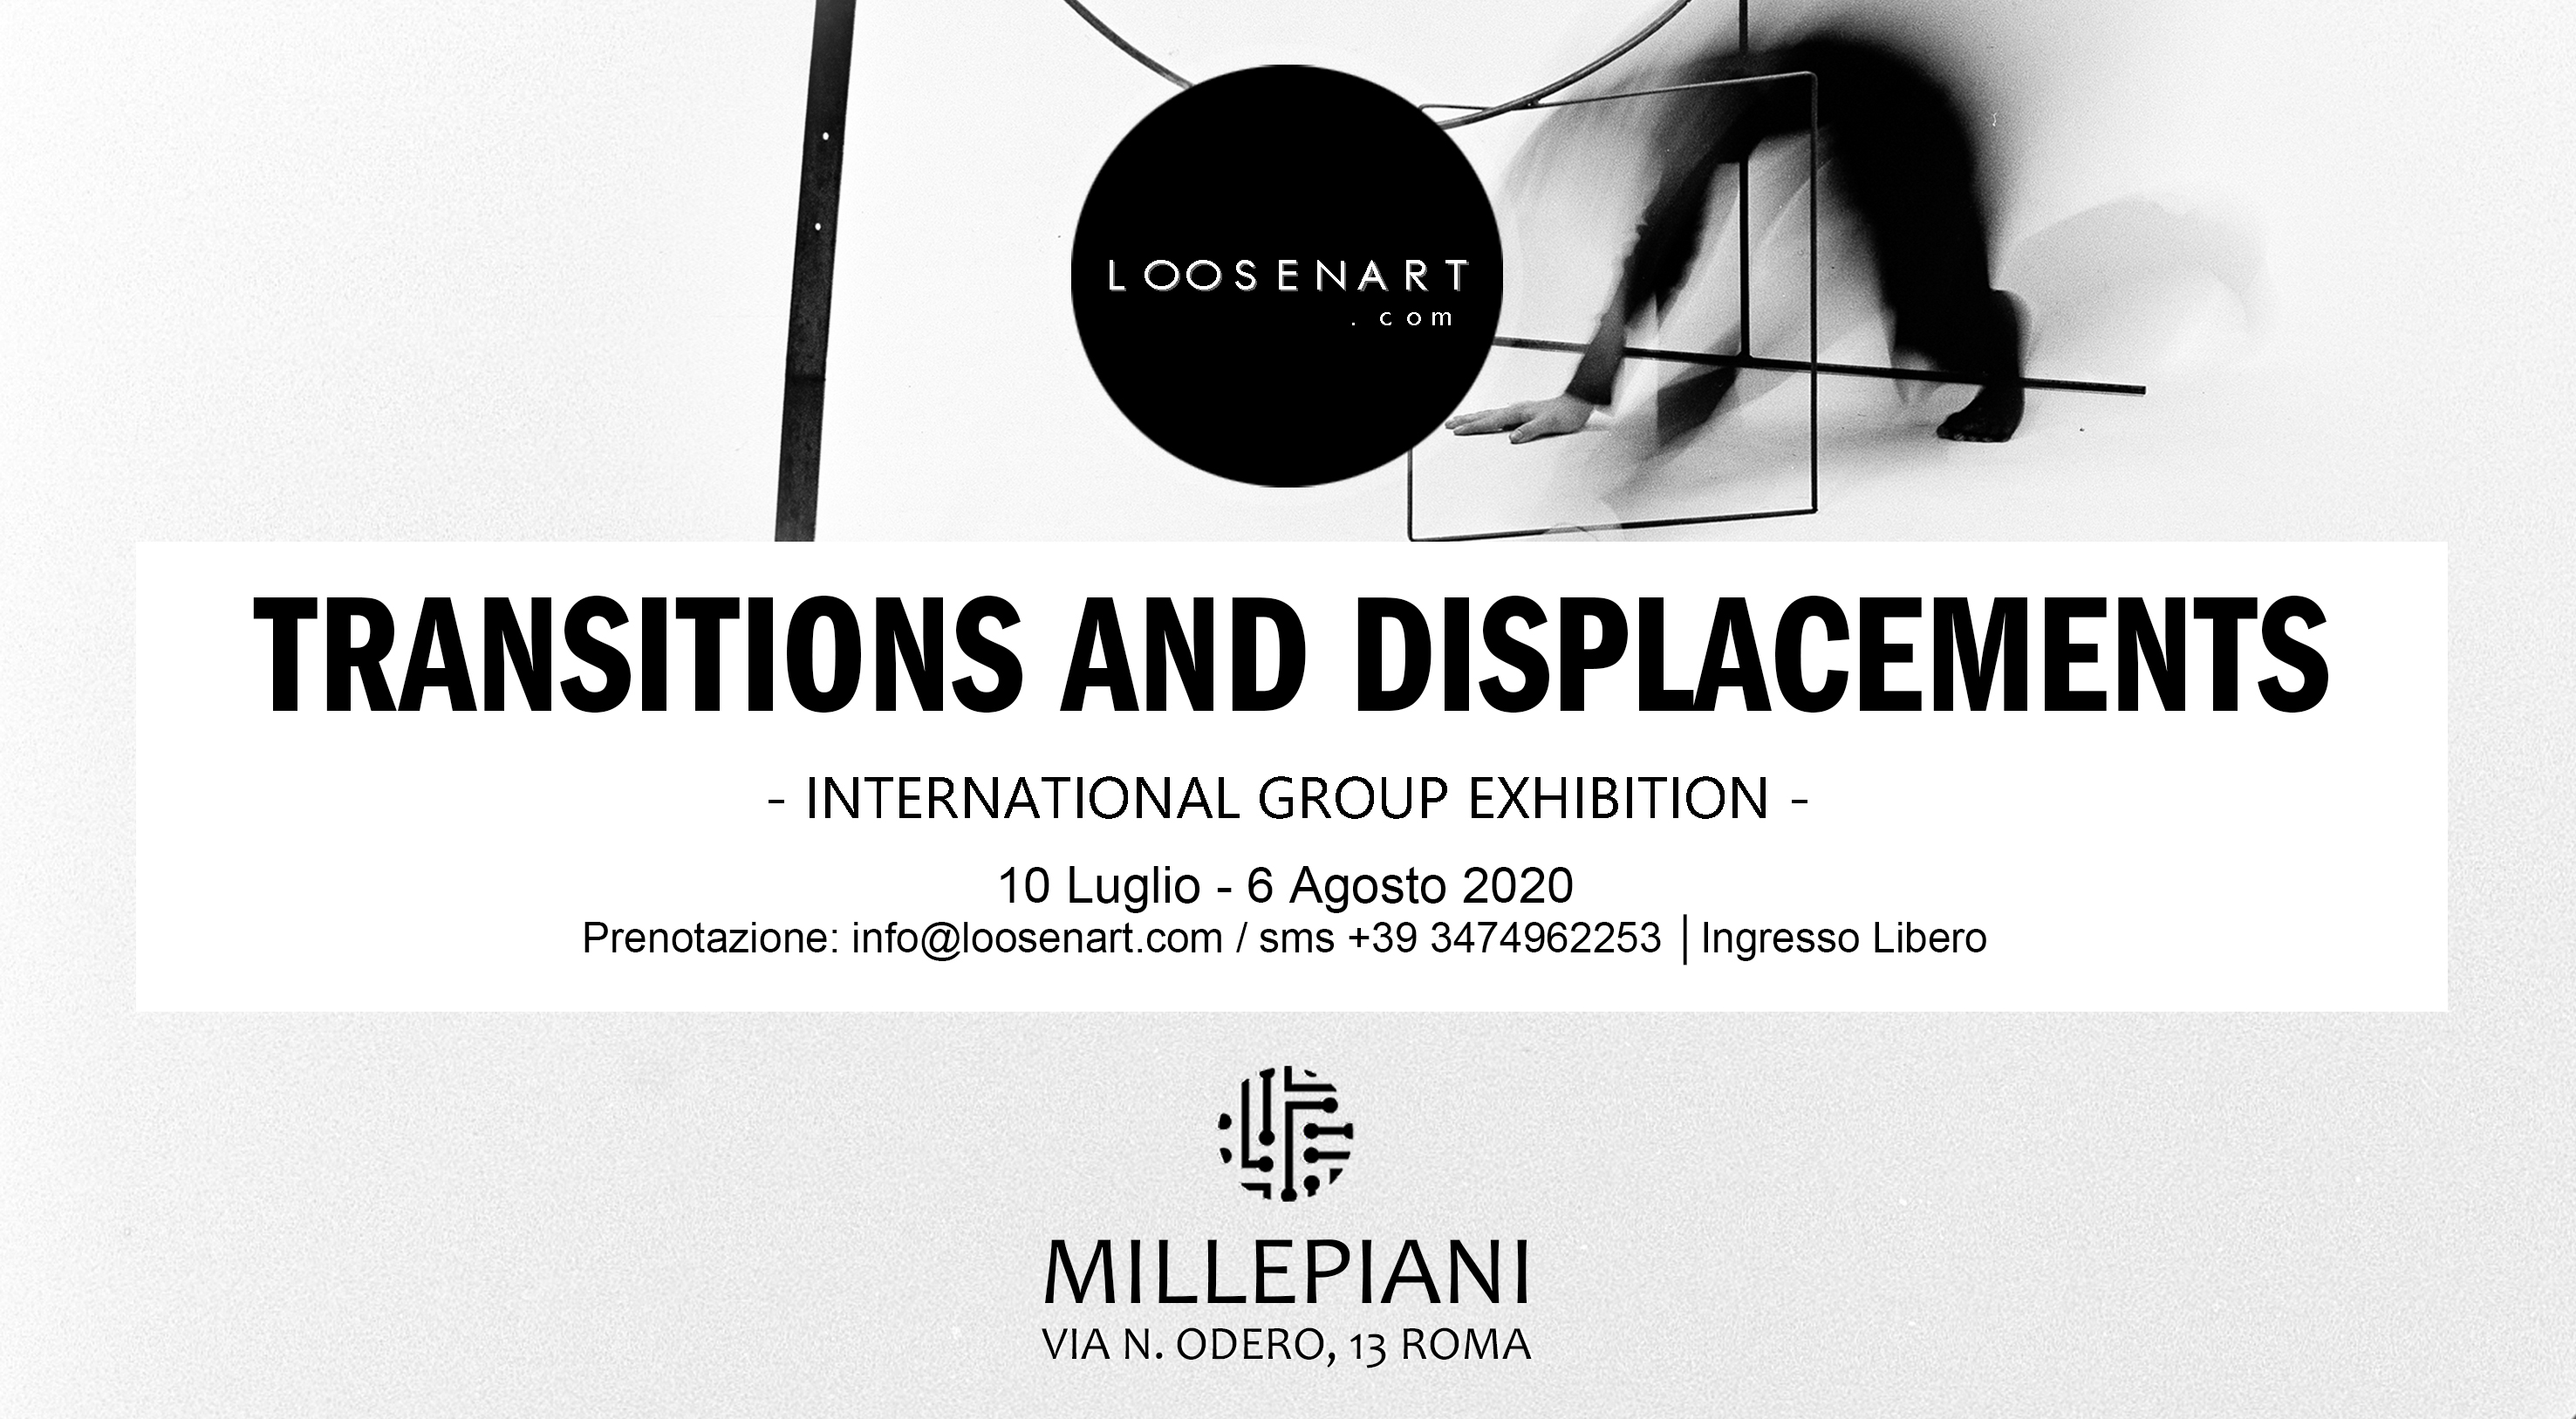 Millepiani Loosenart Transition and Displacements